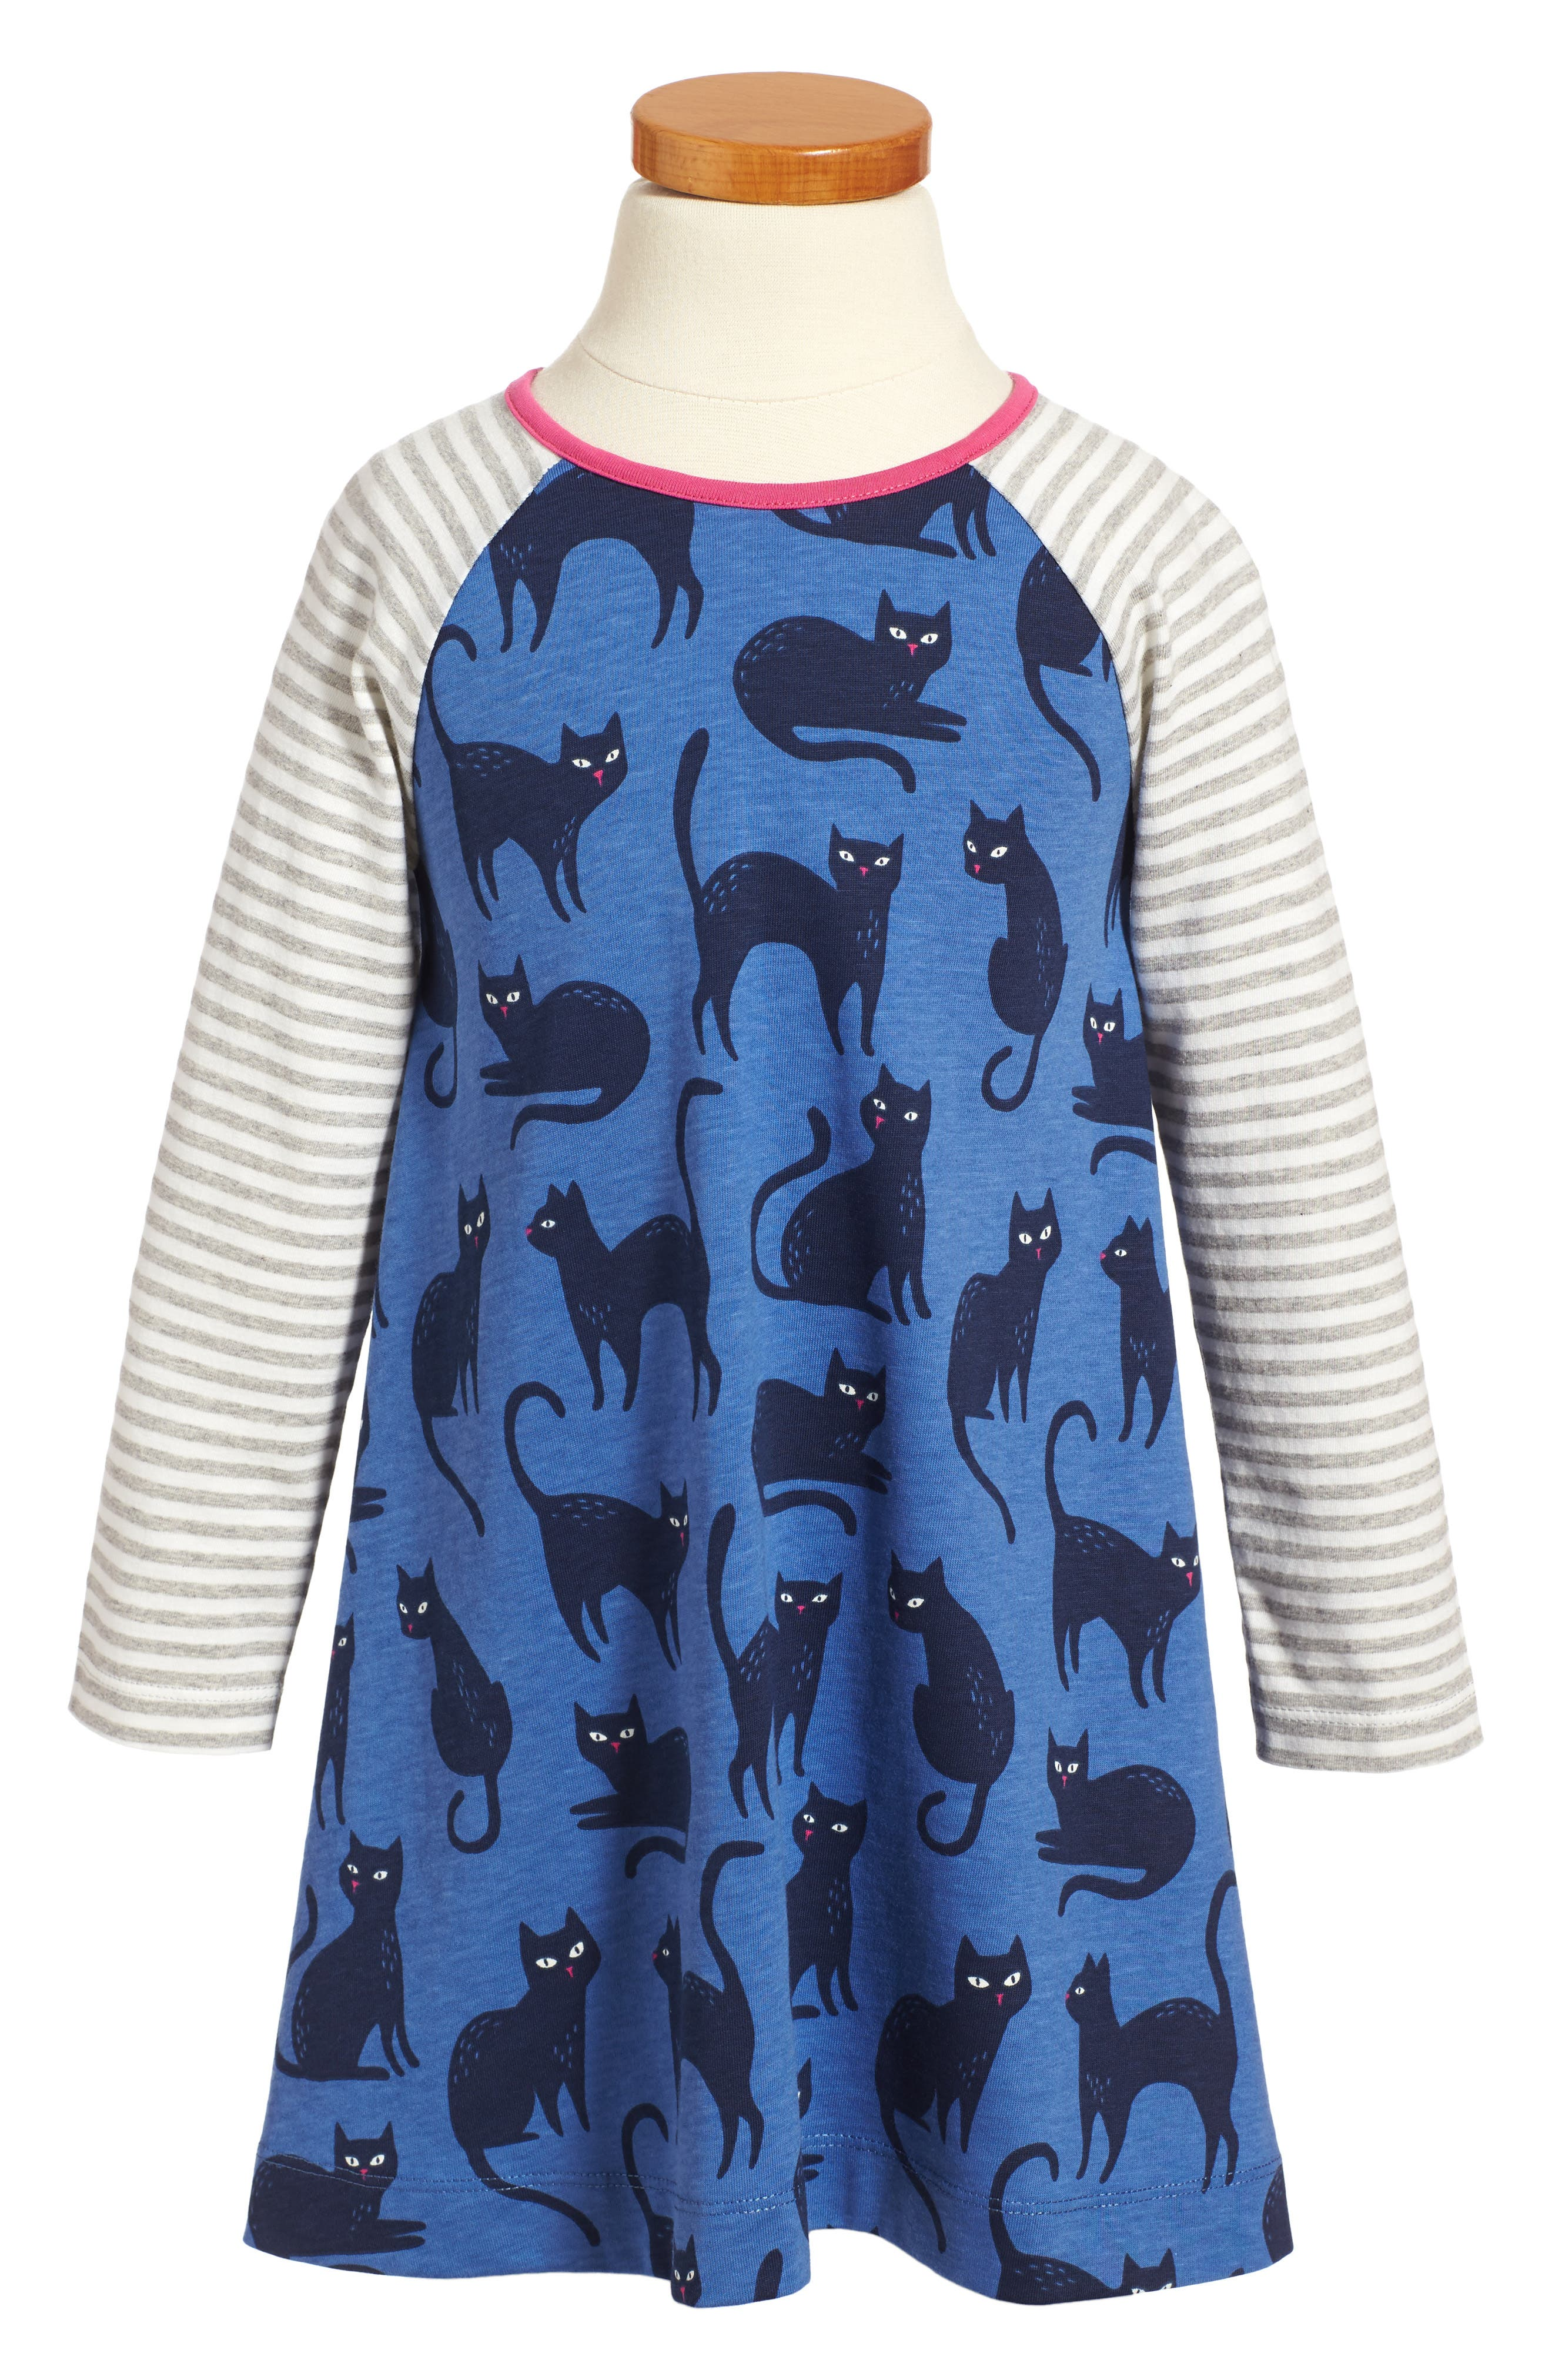 Main Image - Mini Boden Cat Glow in the Dark Dress (Toddler Girls, Little Girls & Big Girls)